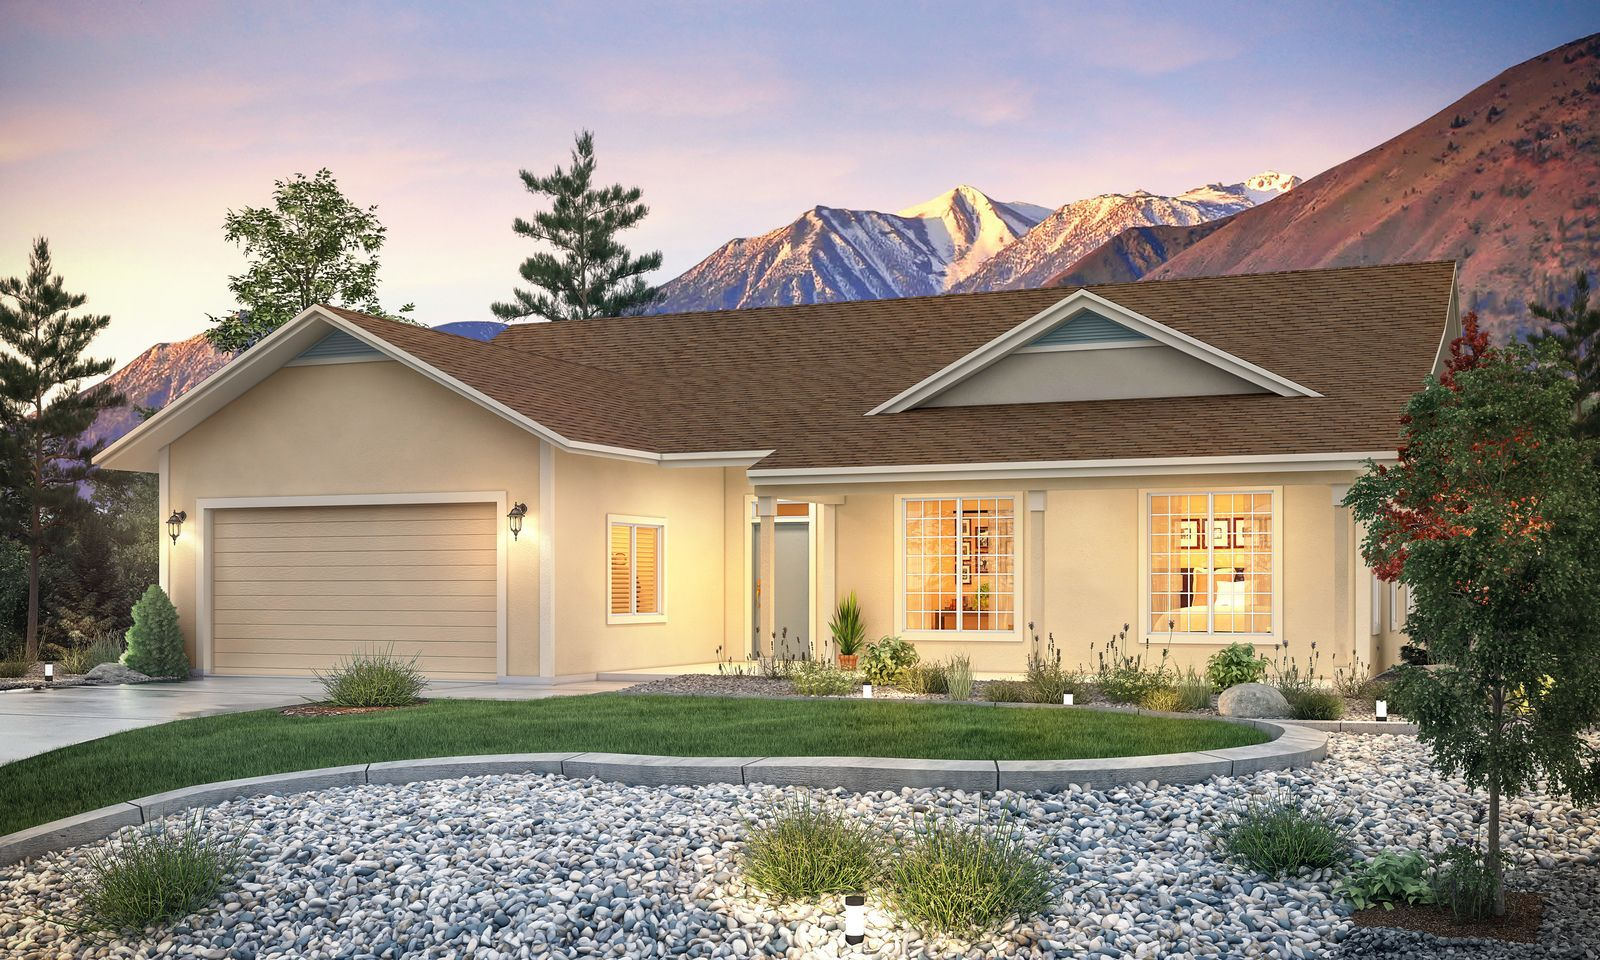 Single Family for Active at Cottages At Carson Valley By Carter Hill - Residence 1 - 1750 Plan 1227 West Cottage Loop Gardnerville, Nevada 89460 United States